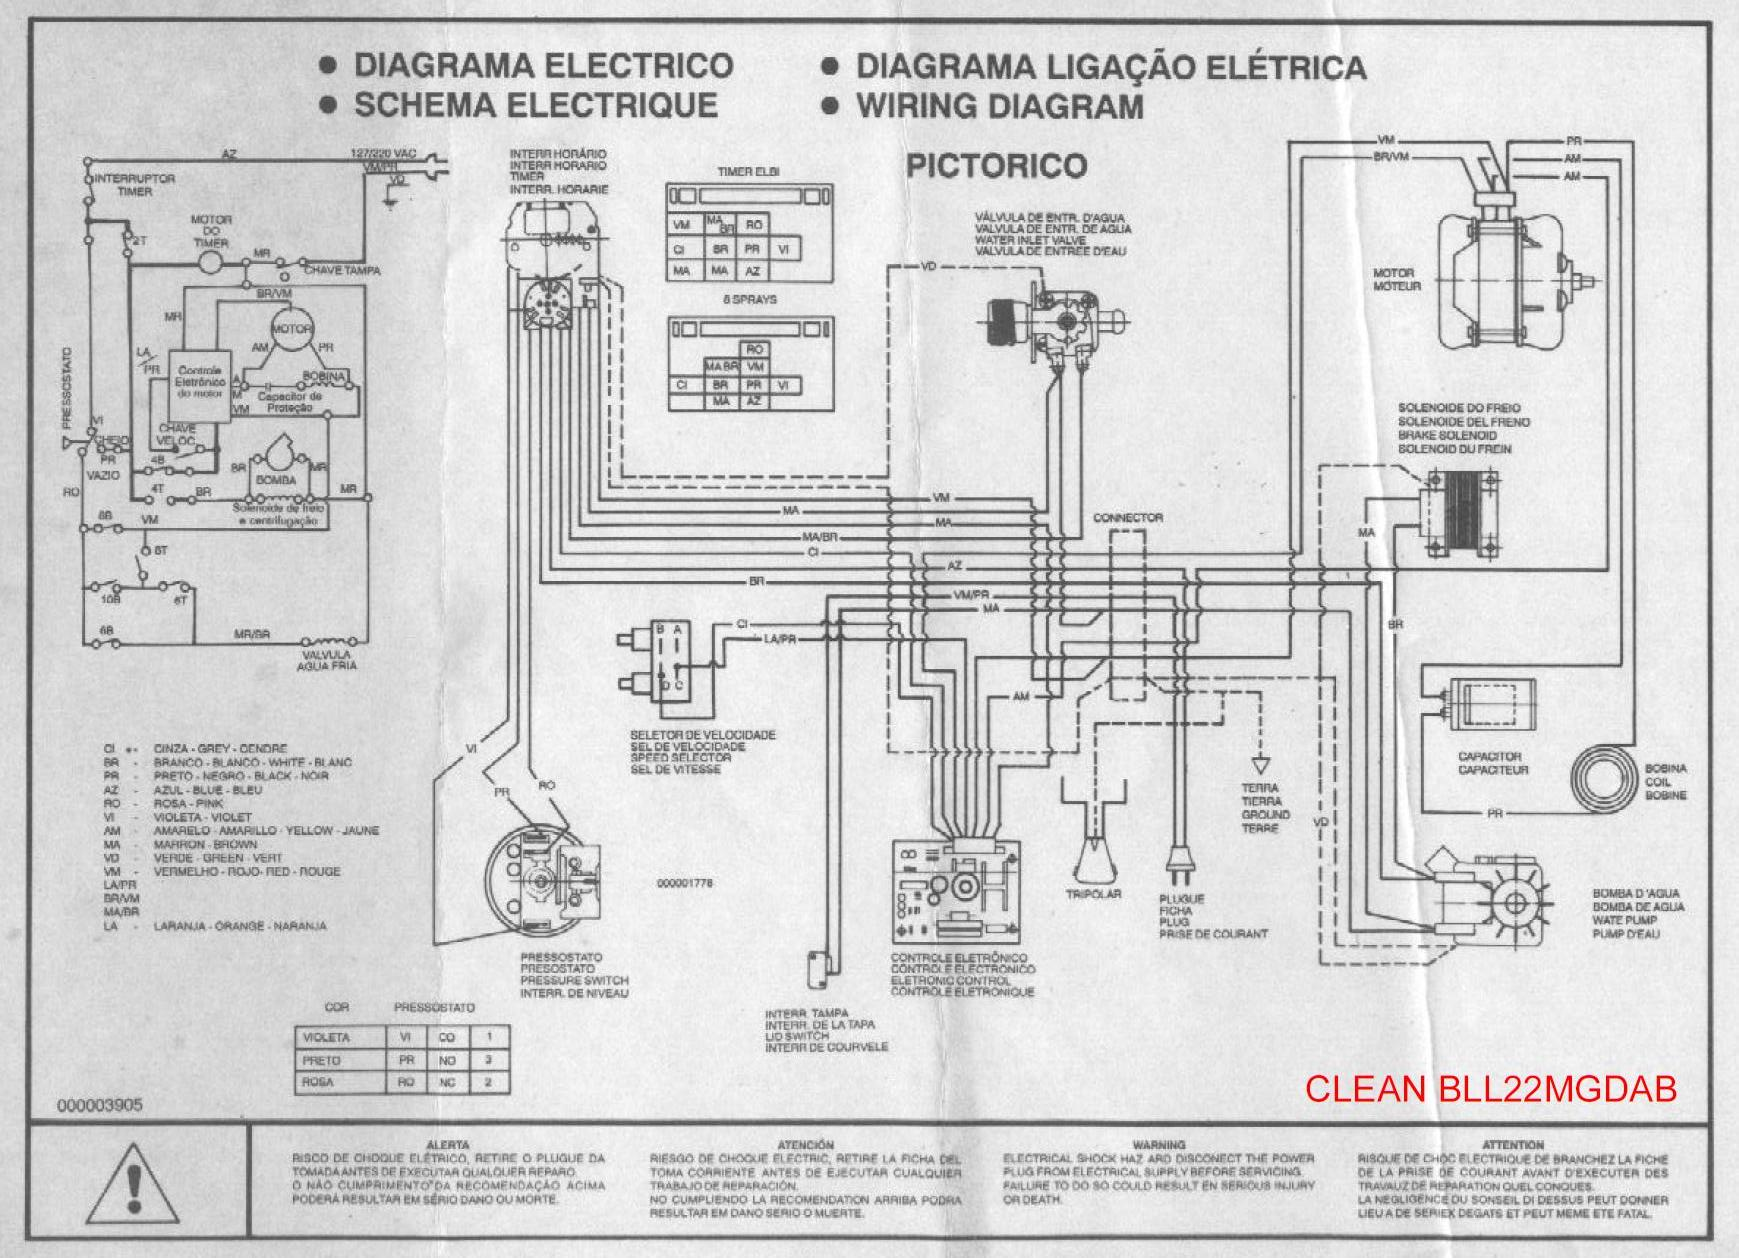 Manual Secadora Enxuta Plus 2 Software Free Download